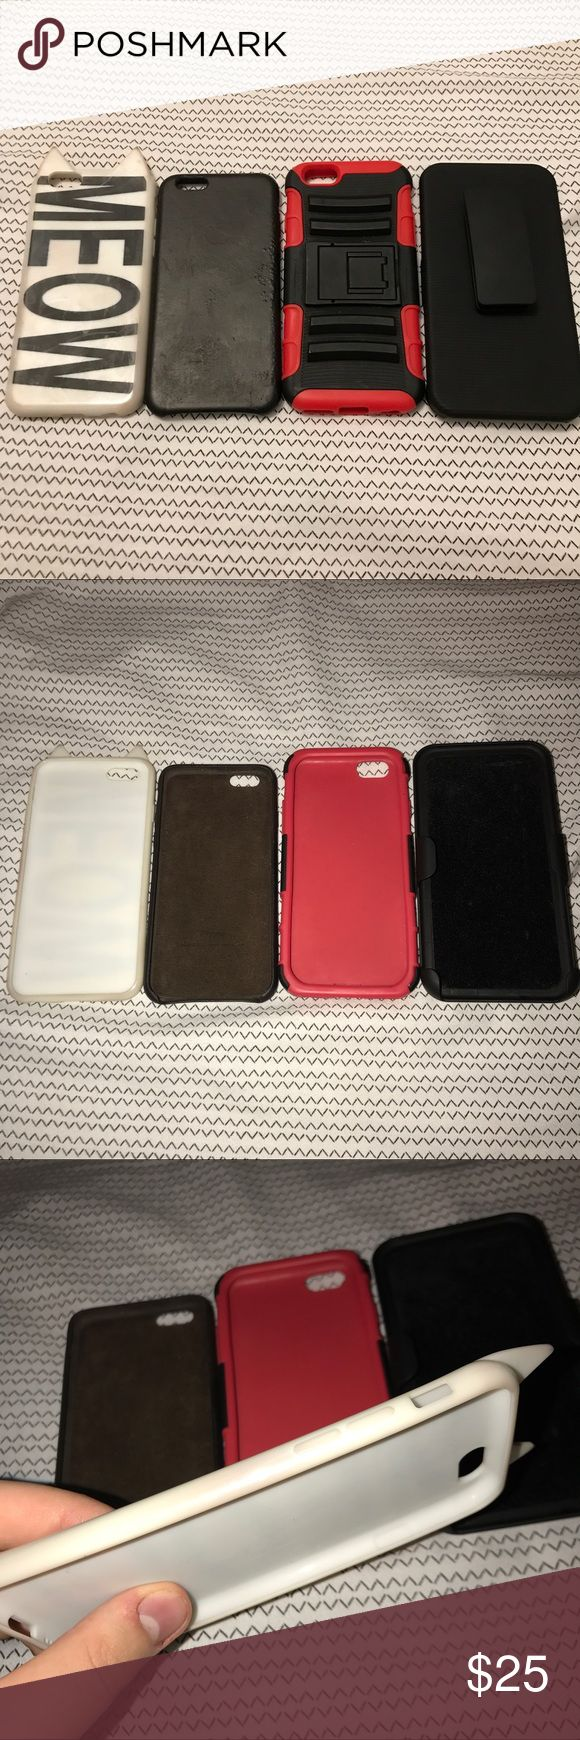 iPhone 6 / 6s Cases Lot Bundle H&M, Apple, Generic ♡condition - good to fair. white hm meow case has stains from use, brown case has bumps and worn down from use. red and black case with stand and holster is like brand new. ♡features - super cute, protective, and low cost apple cases!  ♡prices always negotiable ♡all items are cross-posted so grab them fast ♡tags - aesthetic alien grunge vintage 90s dream reality cute kawaii harajuku jfashion japanese fashion american spring summer sun skirt…